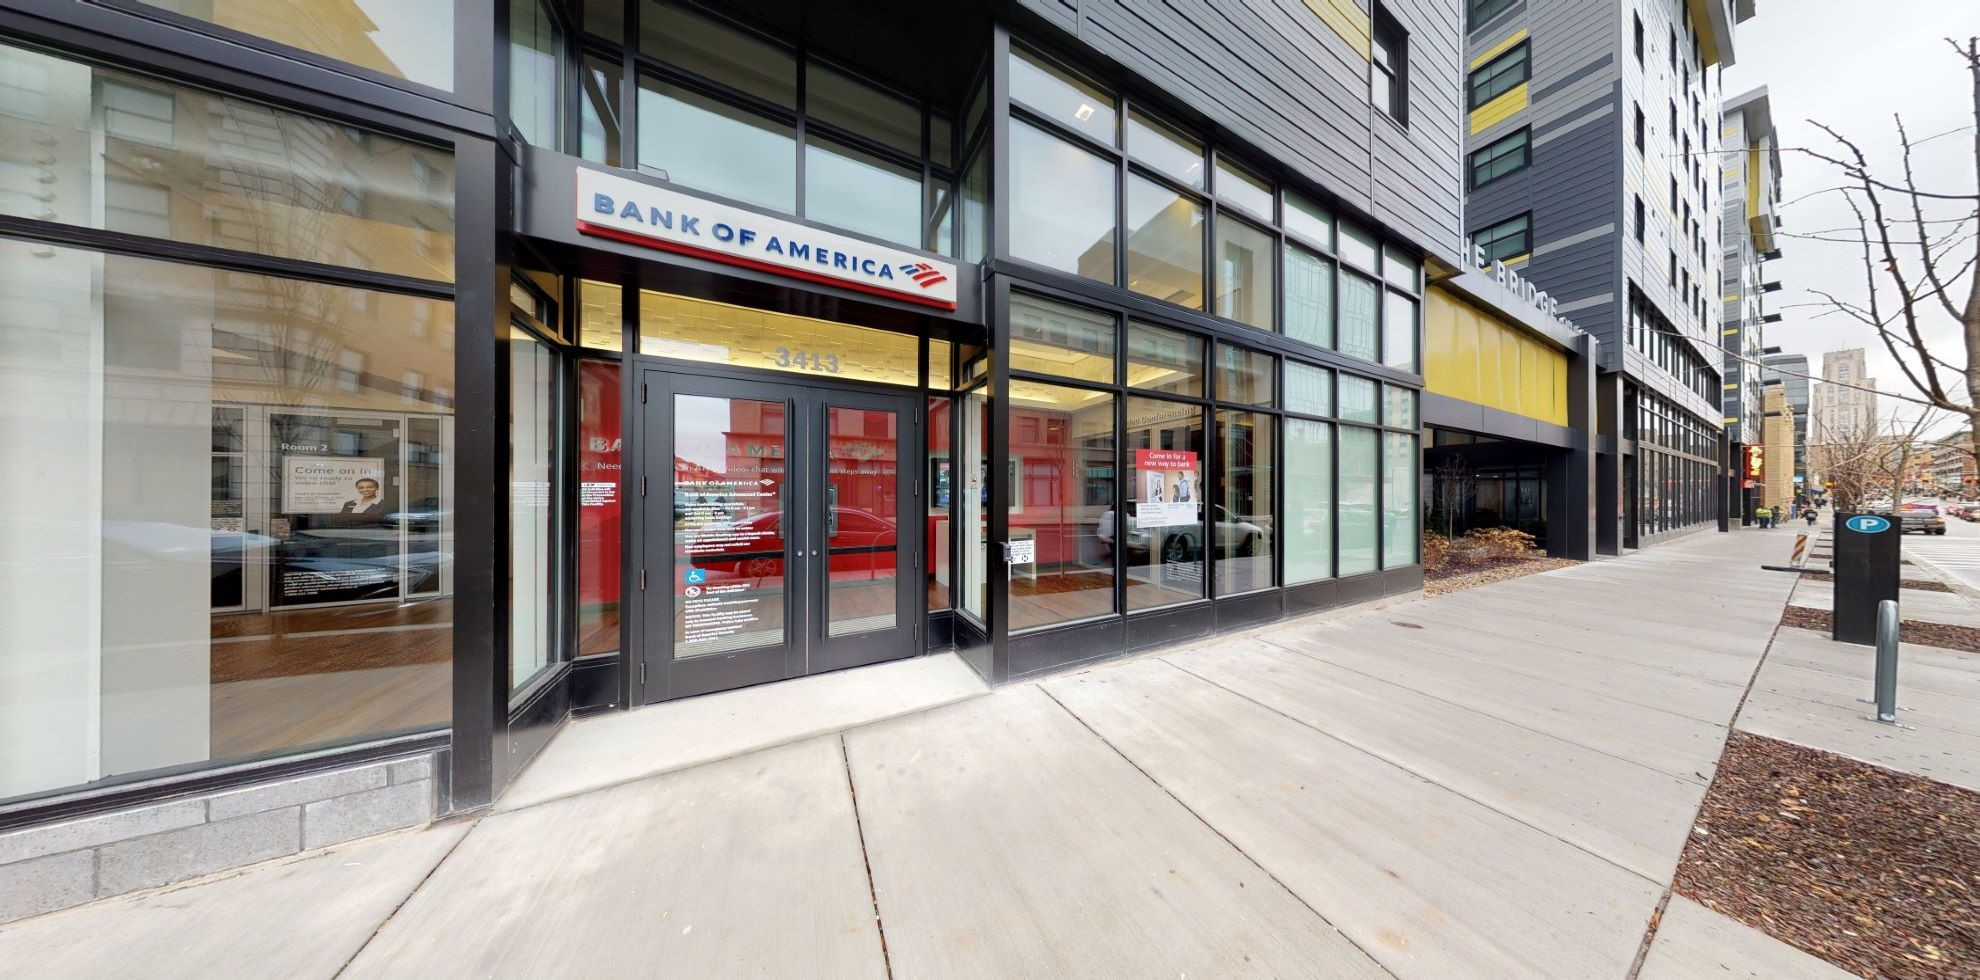 Bank of America Advanced Center with walk-up ATM | 3413 Forbes Ave, Pittsburgh, PA 15213